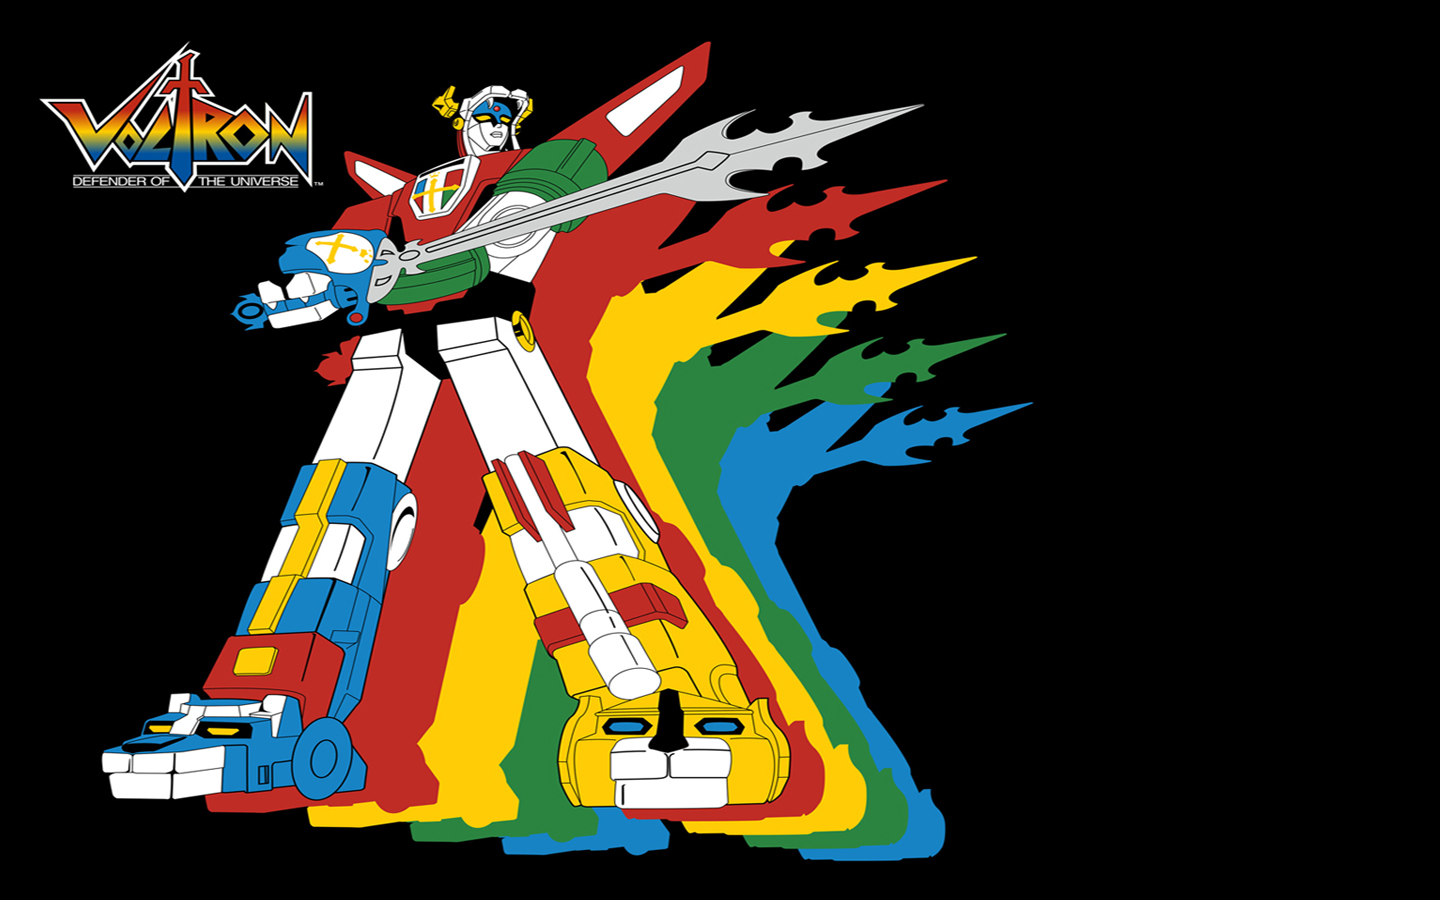 voltron defender of the universe computer wallpapers